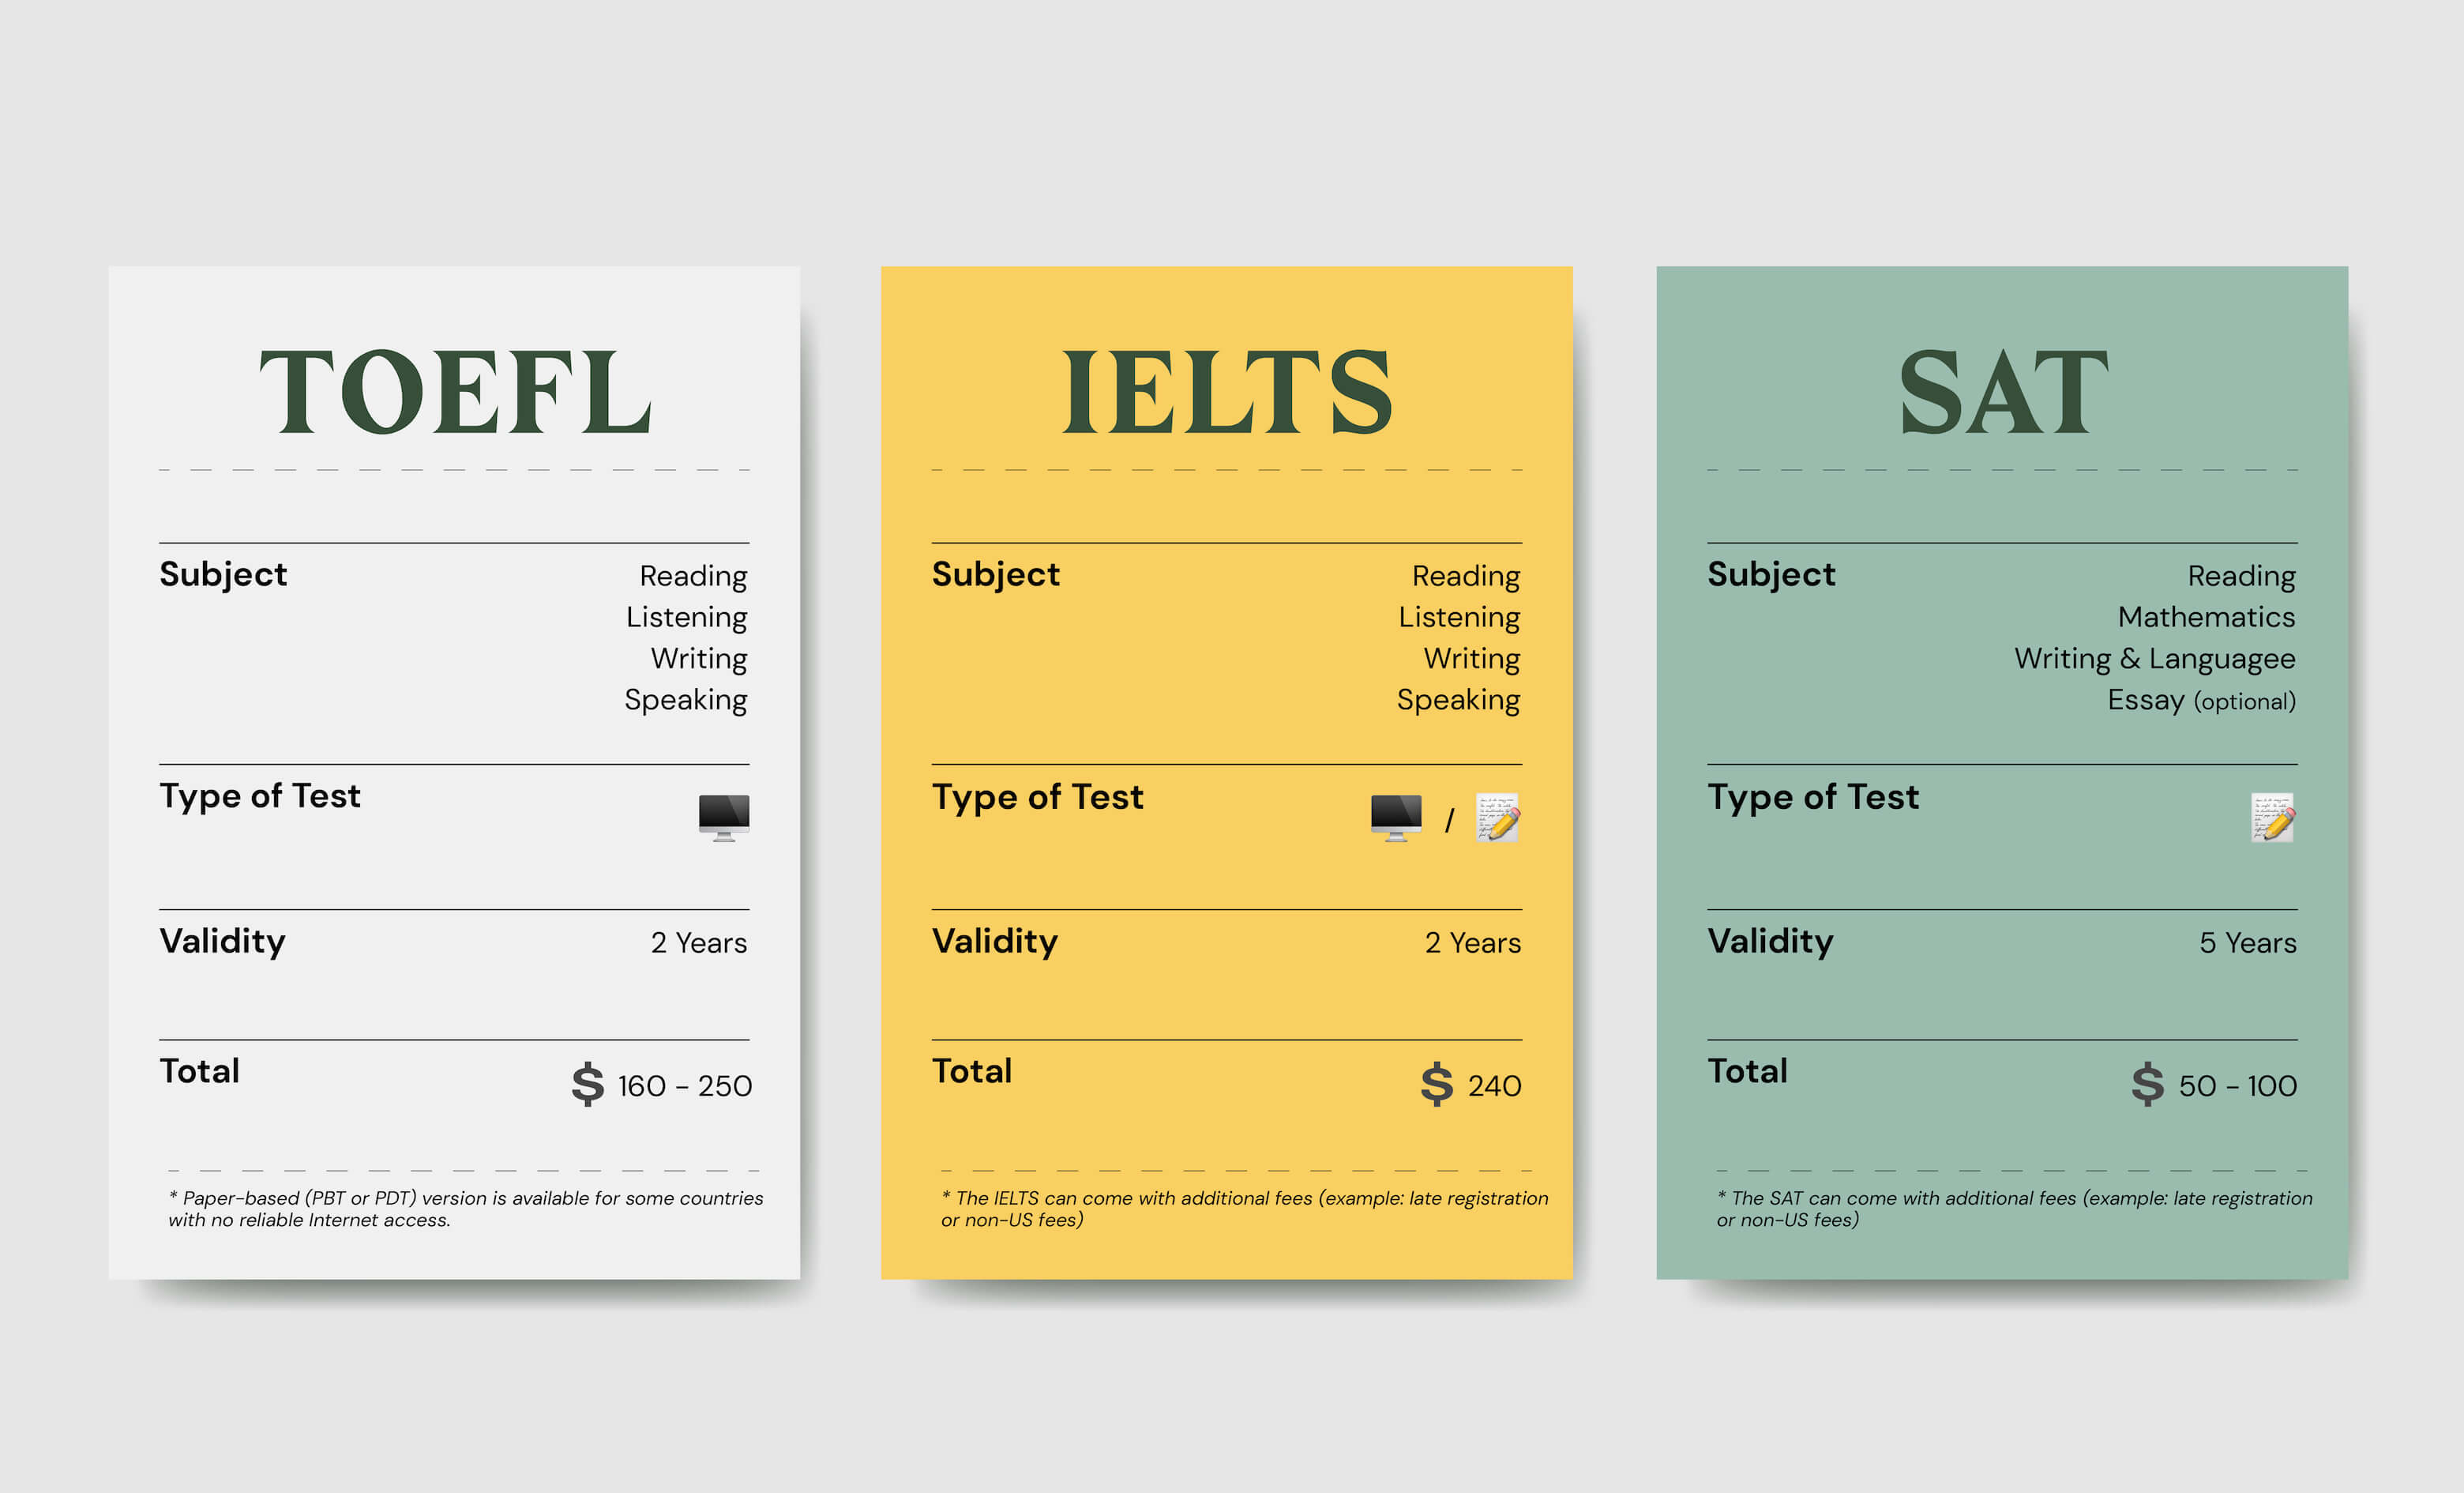 Difference between TOELF, IELTS and SAT